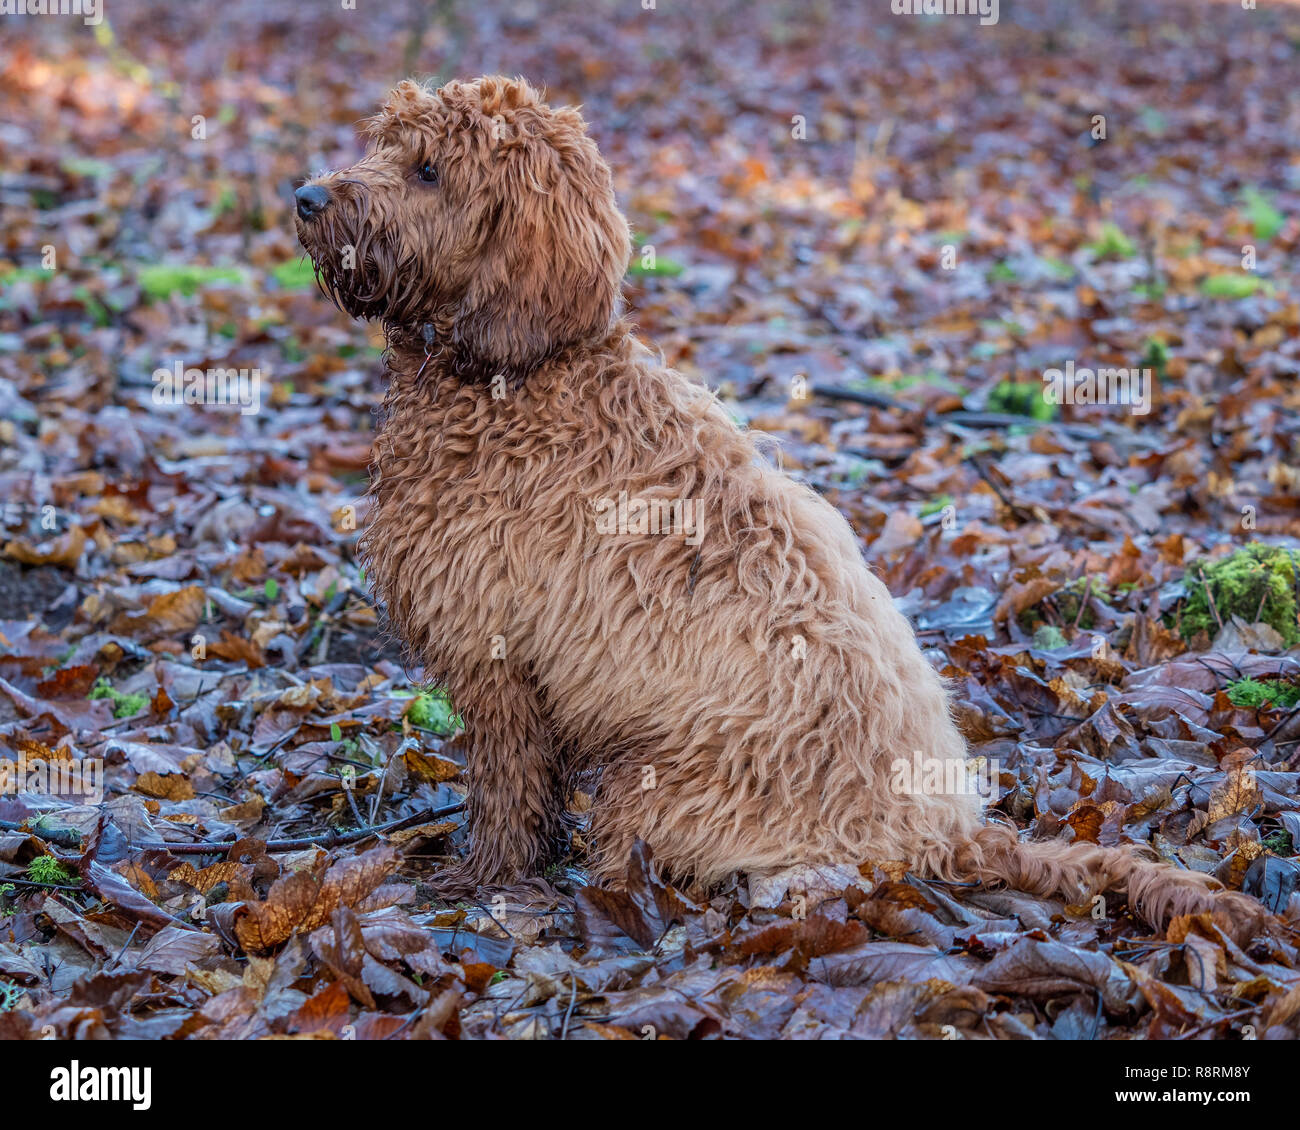 A young cockapoo puppy sitting in the woods amongst the autumn leaves Stock Photo